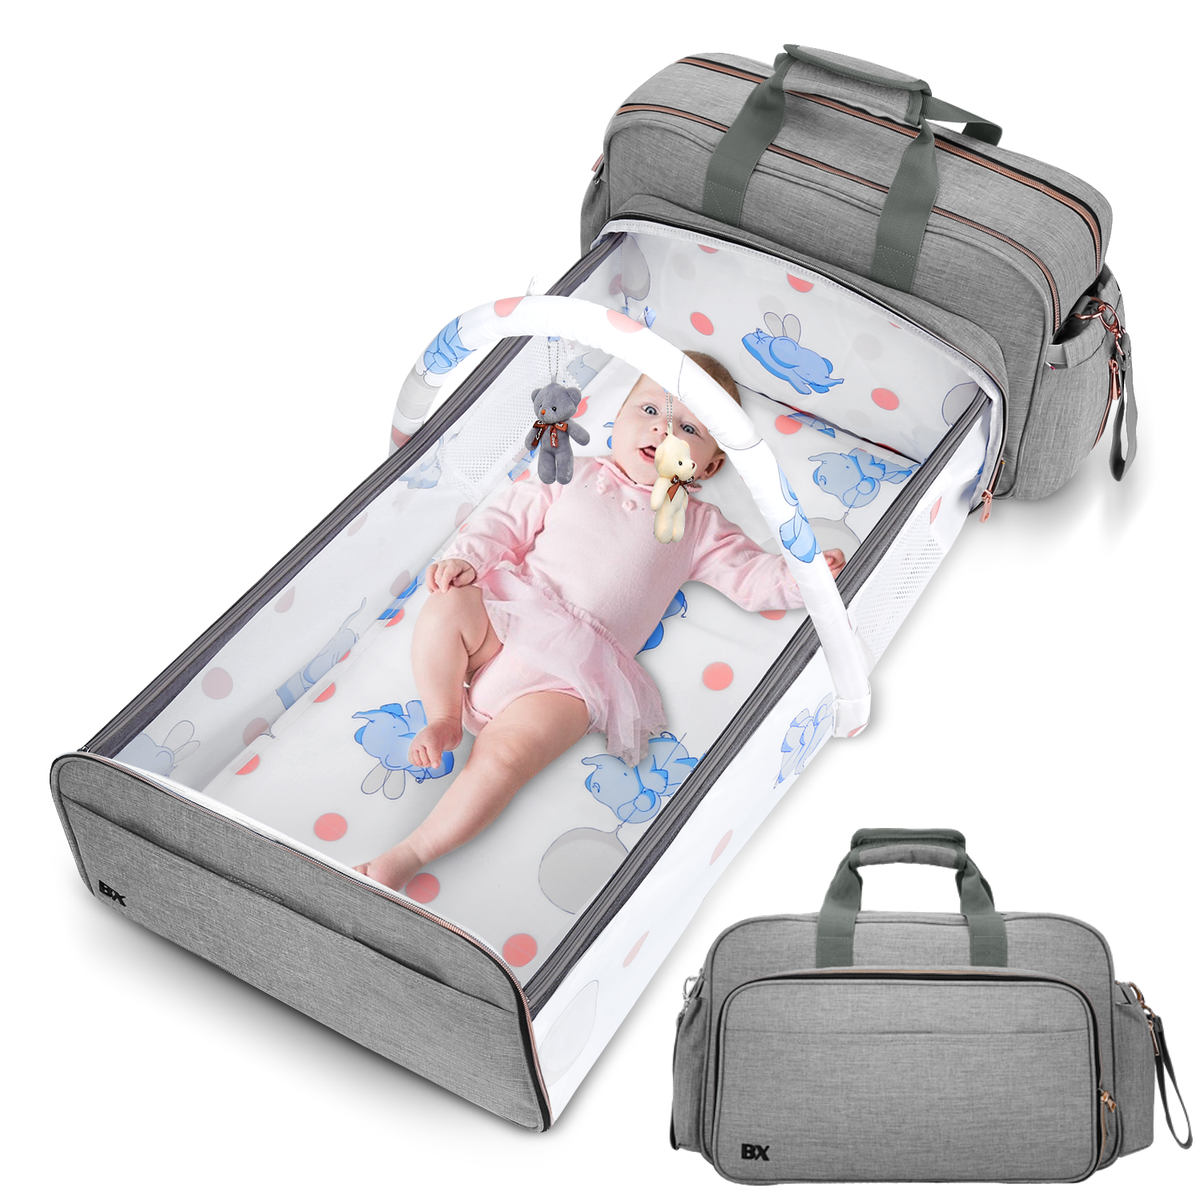 Baby Diaper Bag - Get Organized with Multi-Purpose Travel Baby Bag - Includes Bassinet & Changing Pad